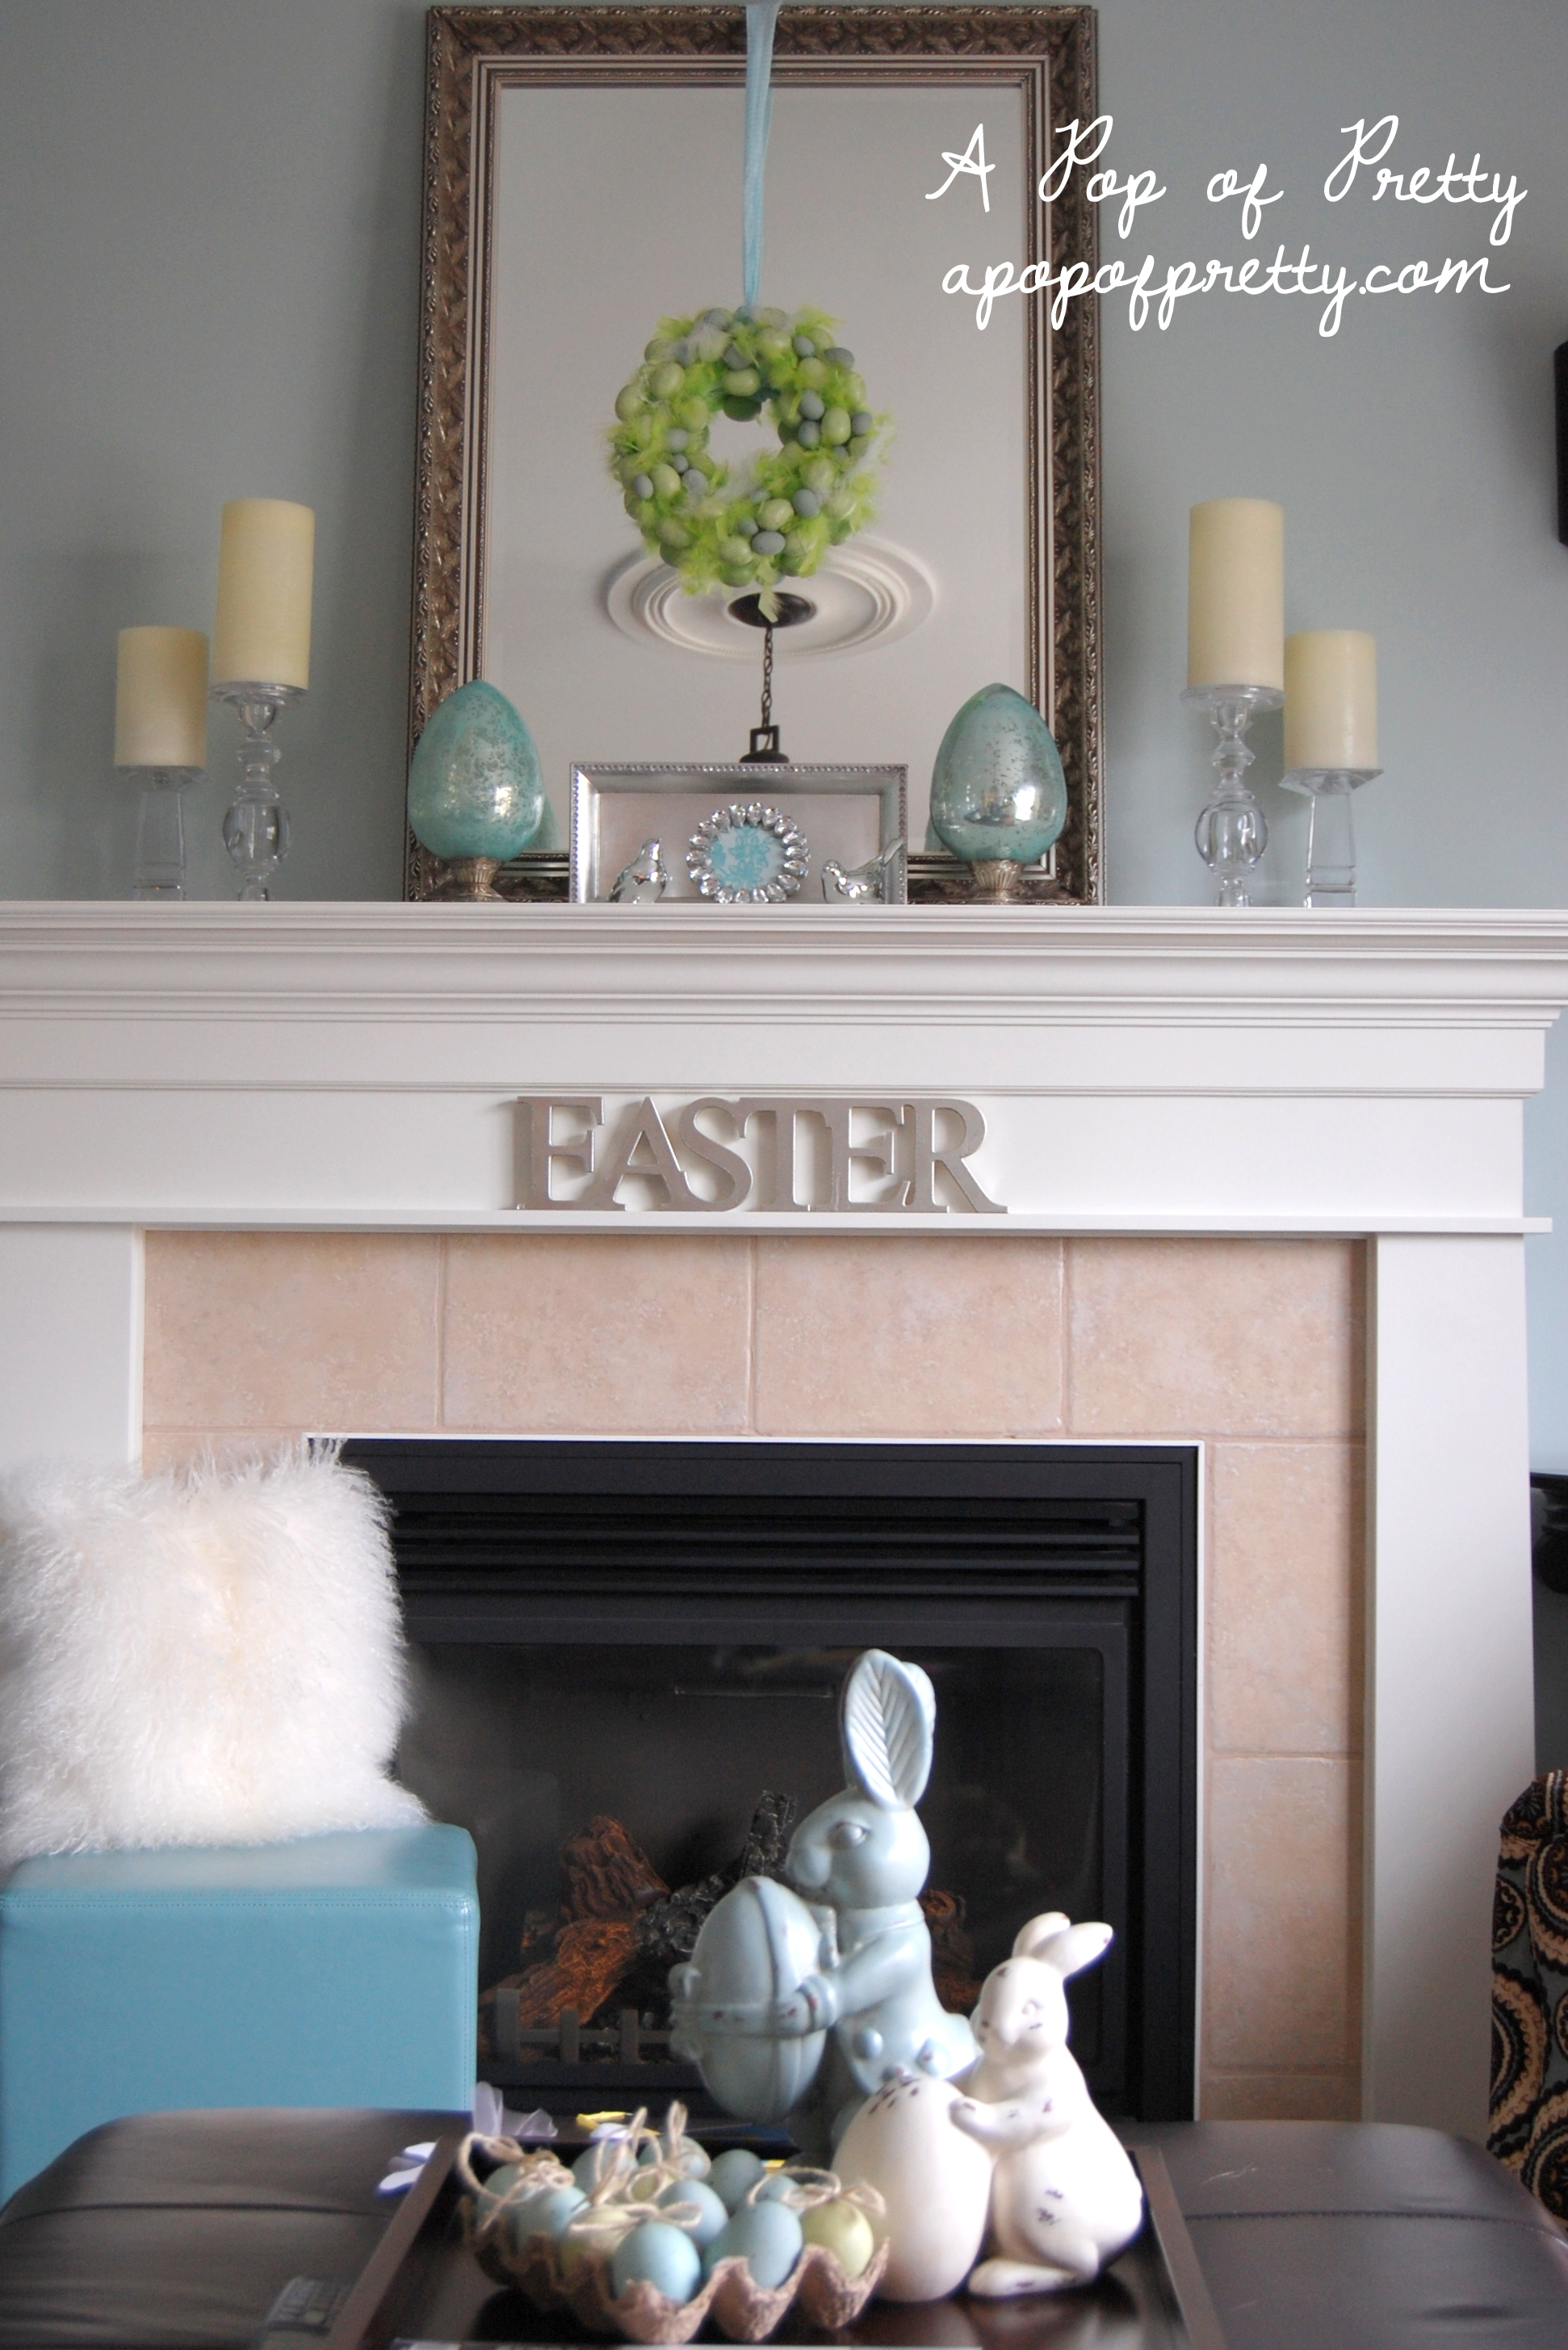 Easter mantel ideas a pop of pretty blog canadian home decorating blog st john 39 s canada - Canadian home decor stores photos ...